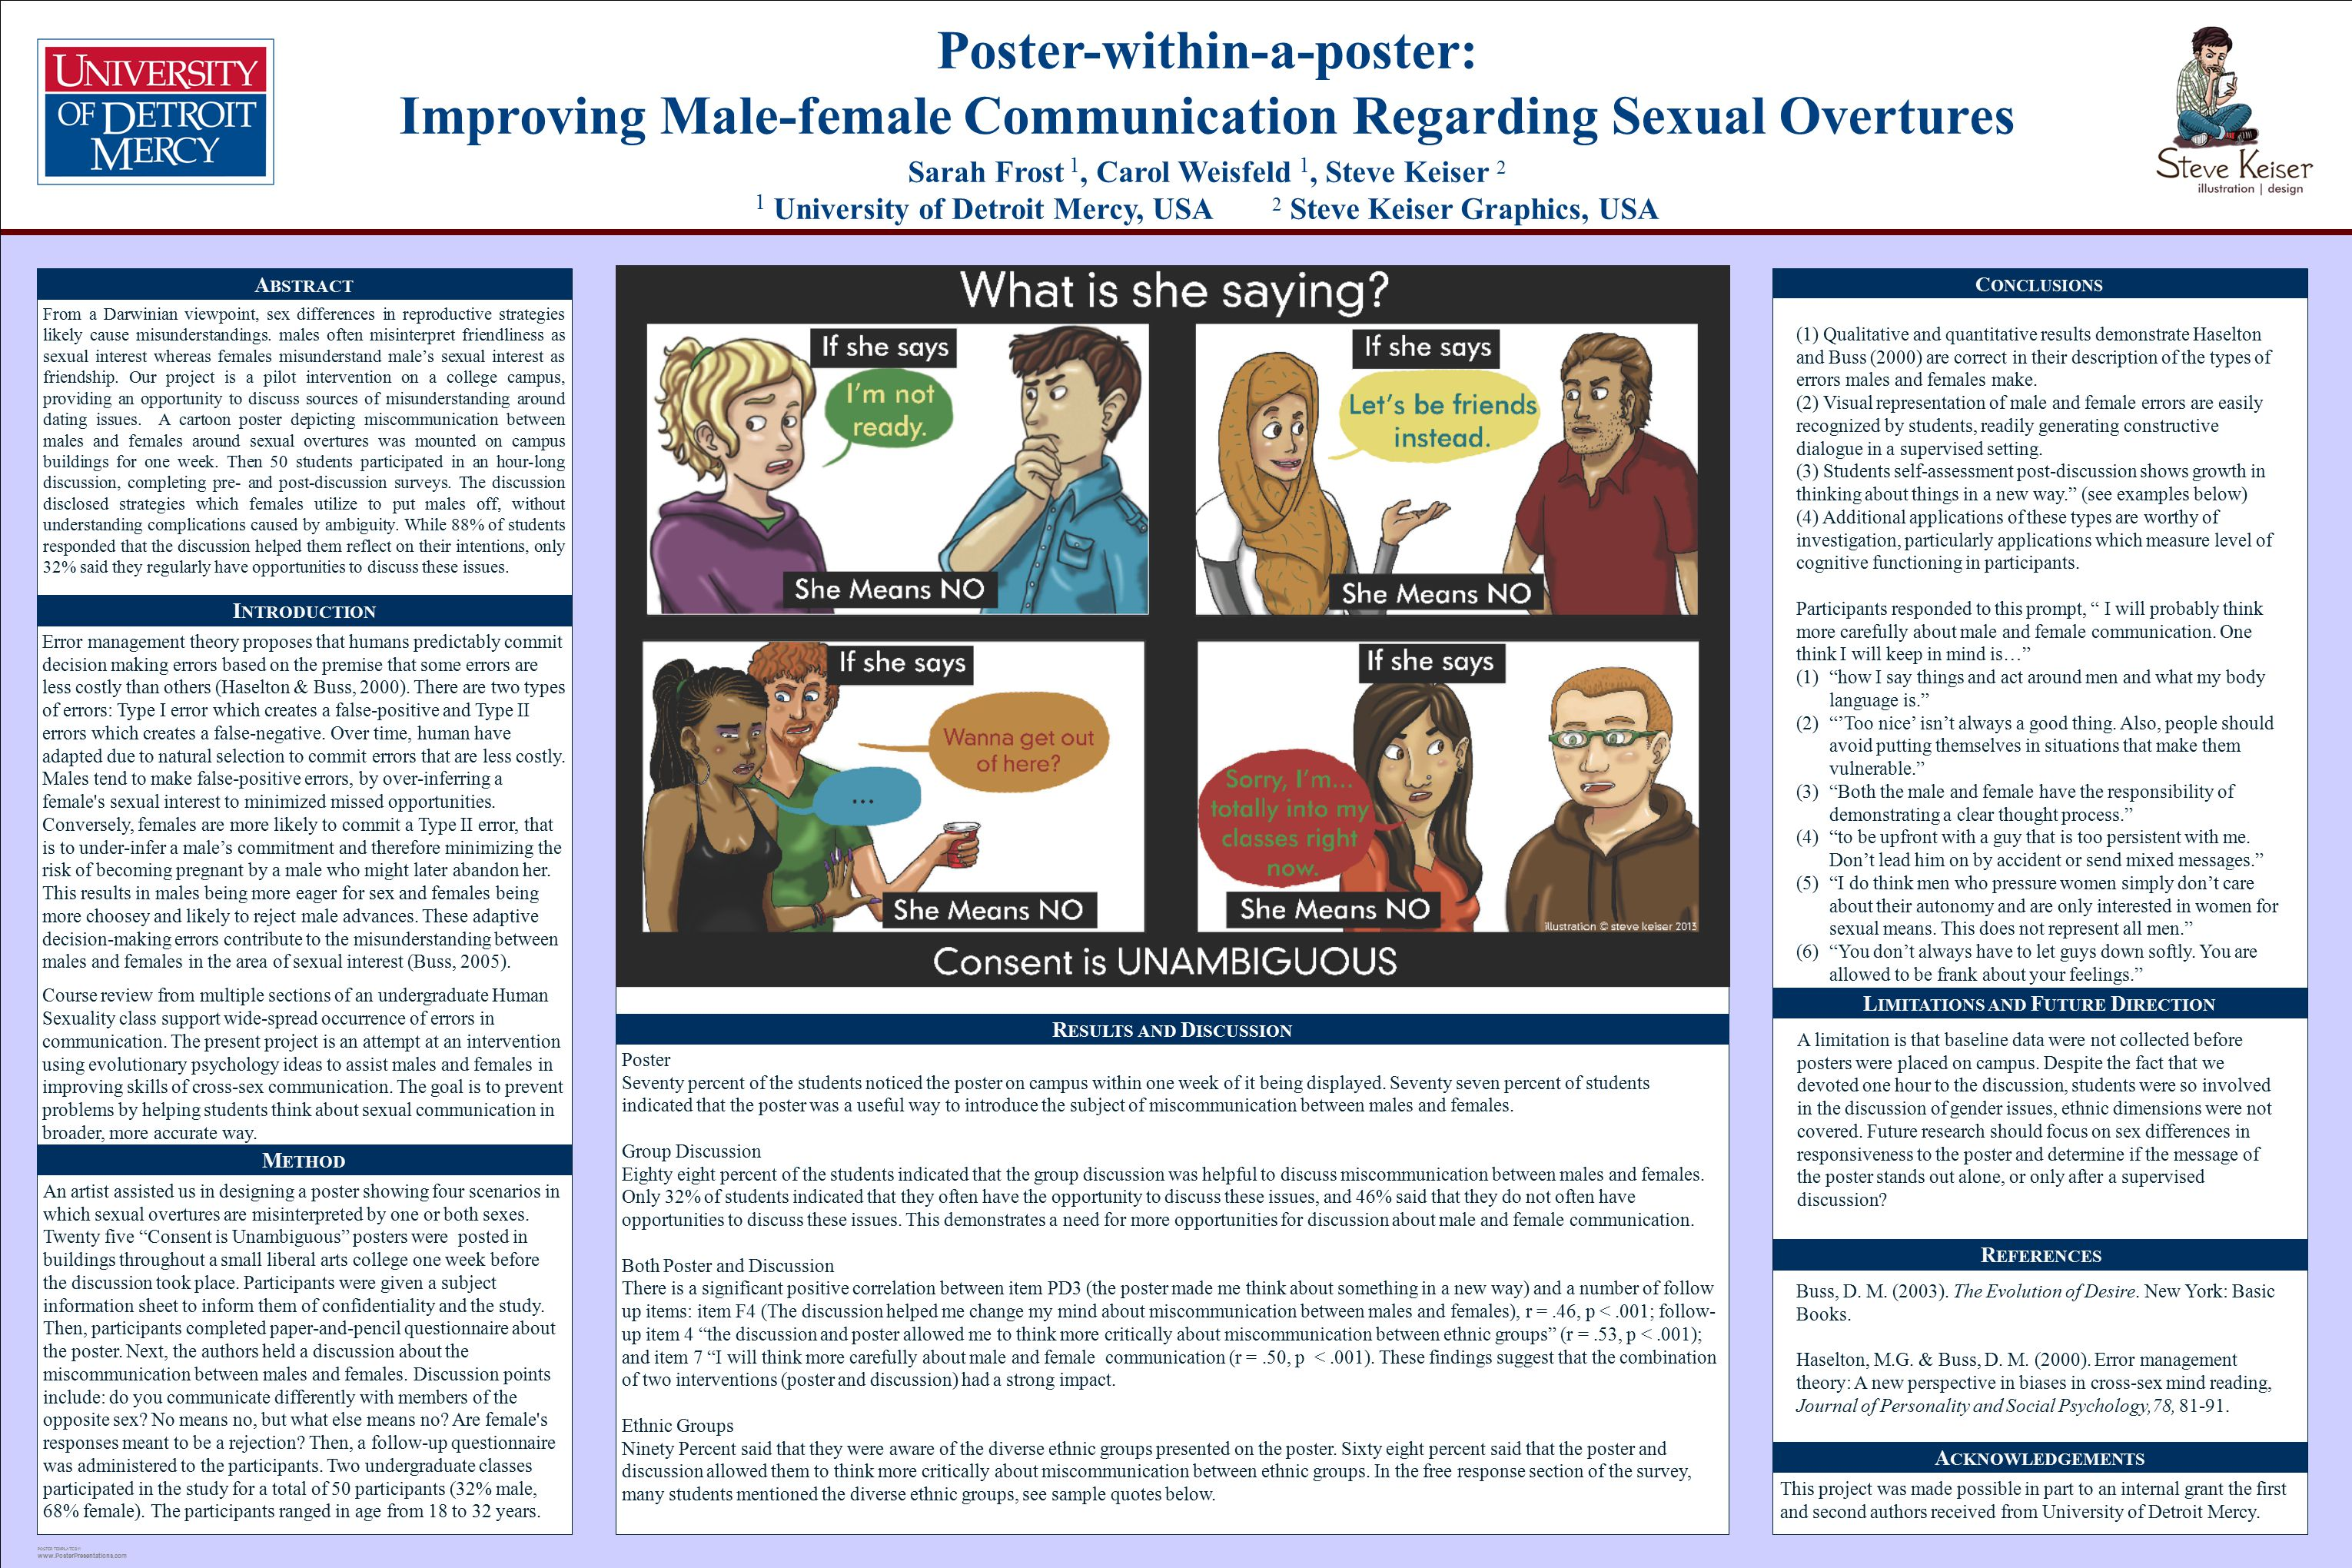 POSTER TEMPLATE BY: www.PosterPresentations.com Poster-within-a-poster: Improving Male-female Communication Regarding Sexual Overtures Sarah Frost 1, Carol Weisfeld 1, Steve Keiser 2 1 University of Detroit Mercy, USA 2 Steve Keiser Graphics, USA A BSTRACT C ONCLUSIONS R EFERENCES (1) Qualitative and quantitative results demonstrate Haselton and Buss (2000) are correct in their description of the types of errors males and females make.